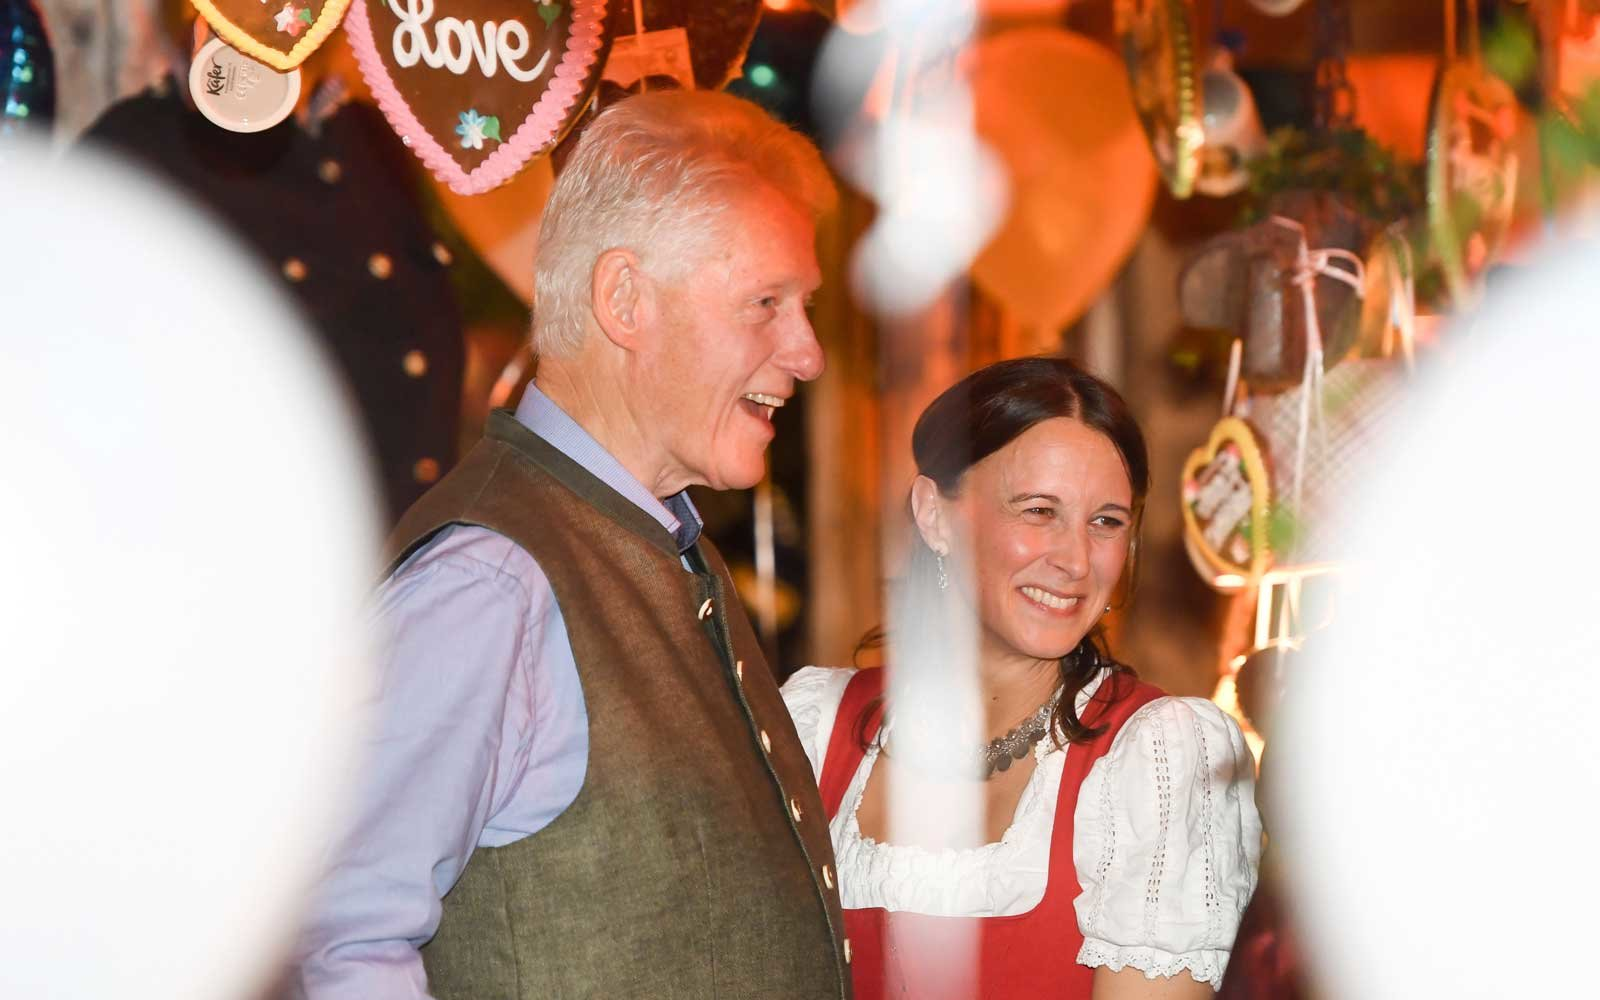 Bavaria, Munich: Bill Clinton, former US President, and a guest (unknown) hugging each other in the Kaefer tent at the Oktoberfest.